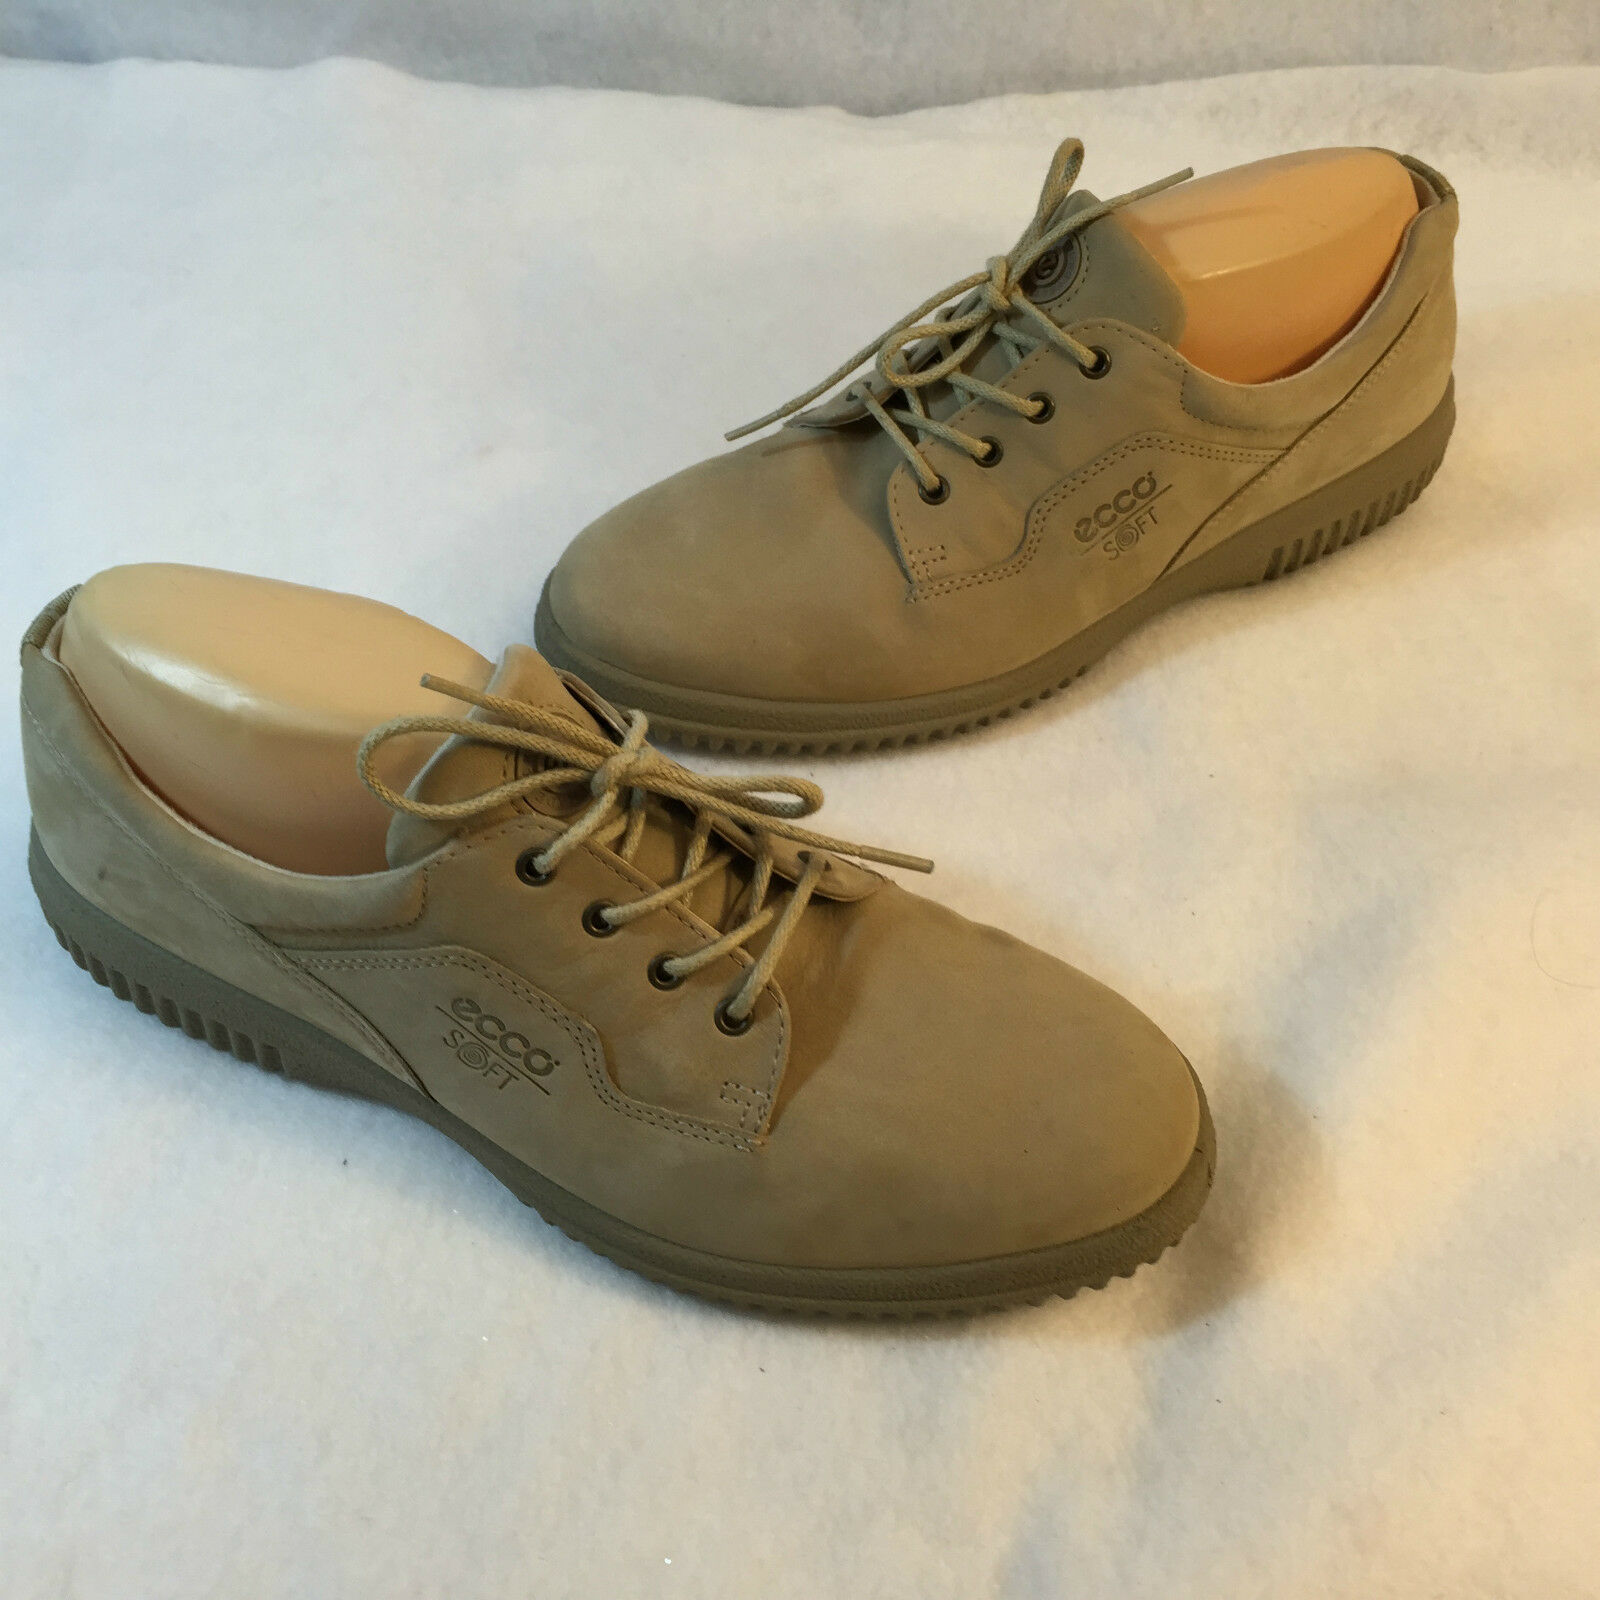 Ecco Soft Lace Up Oxford Casual Schuhe Walking Beige Suede 42 Comfort 42 Suede 11 11.5 M aa8c15